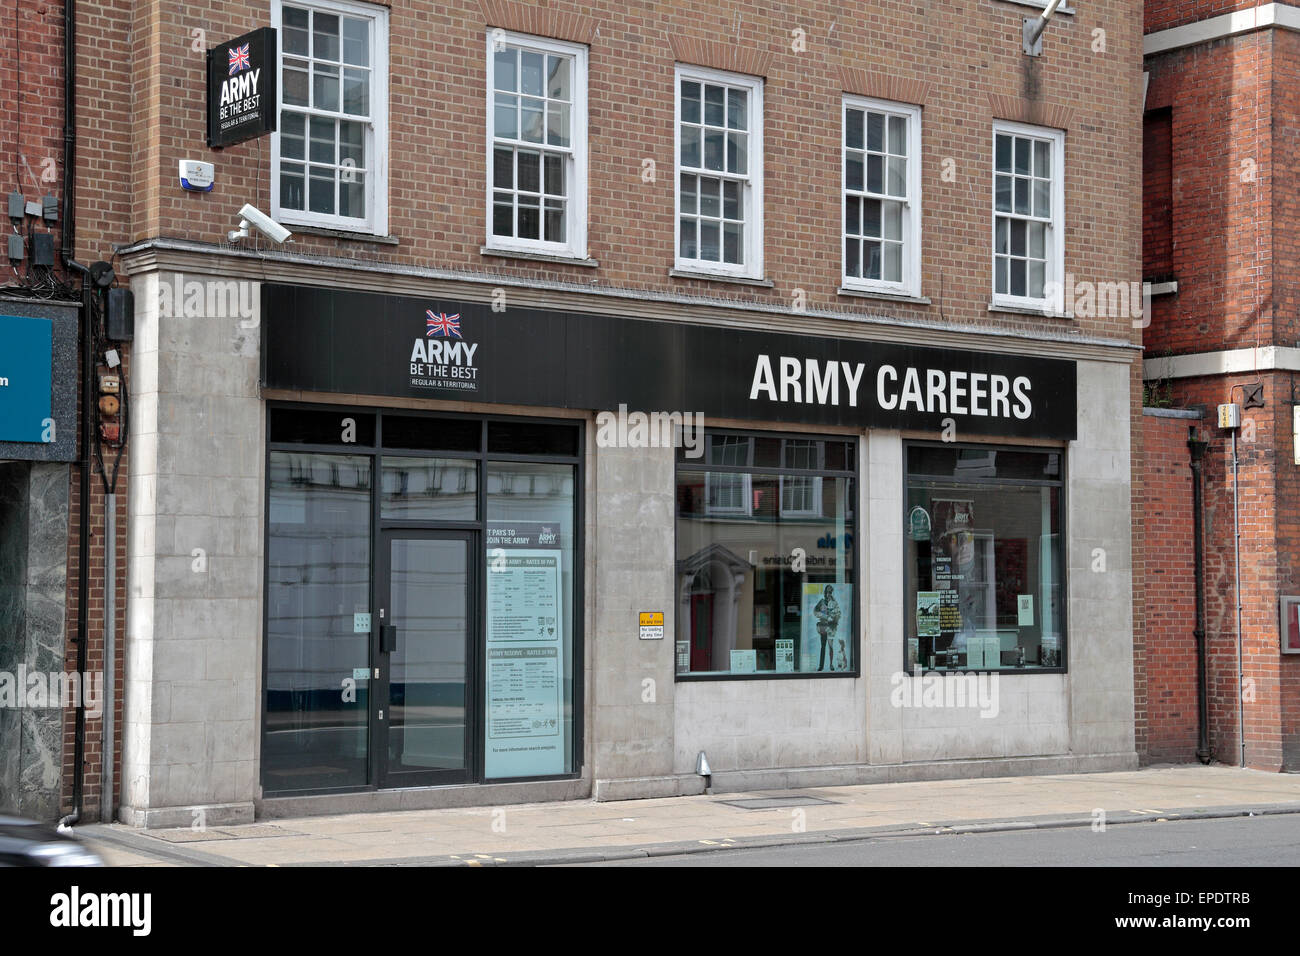 The Army Careers centre in Worcester, Worcestershire, UK. - Stock Image